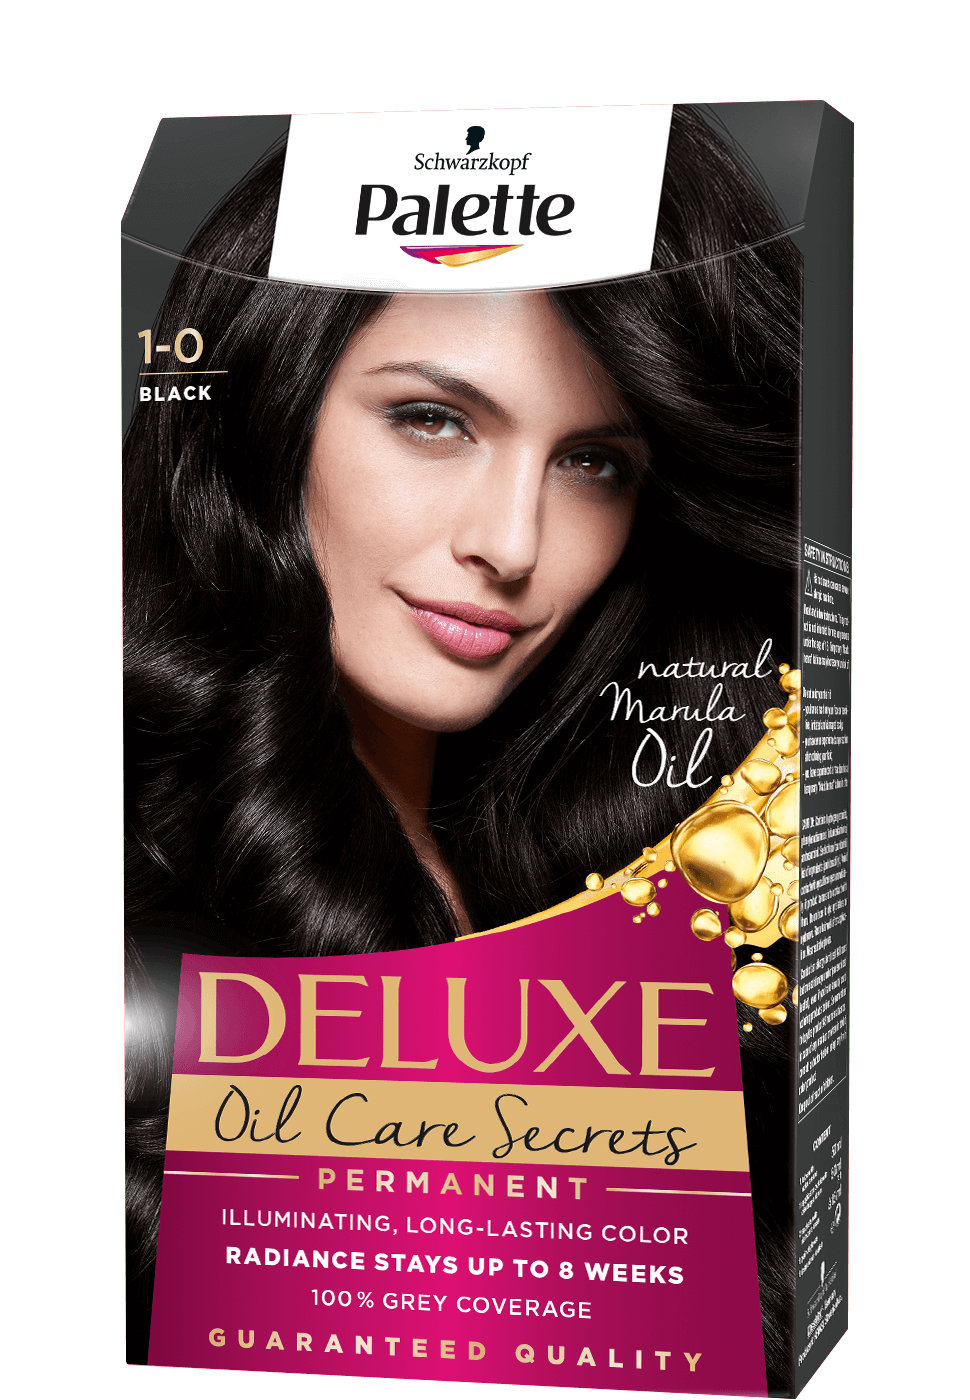 palette_com_oil_care_secrets_1_0_black_970x1400